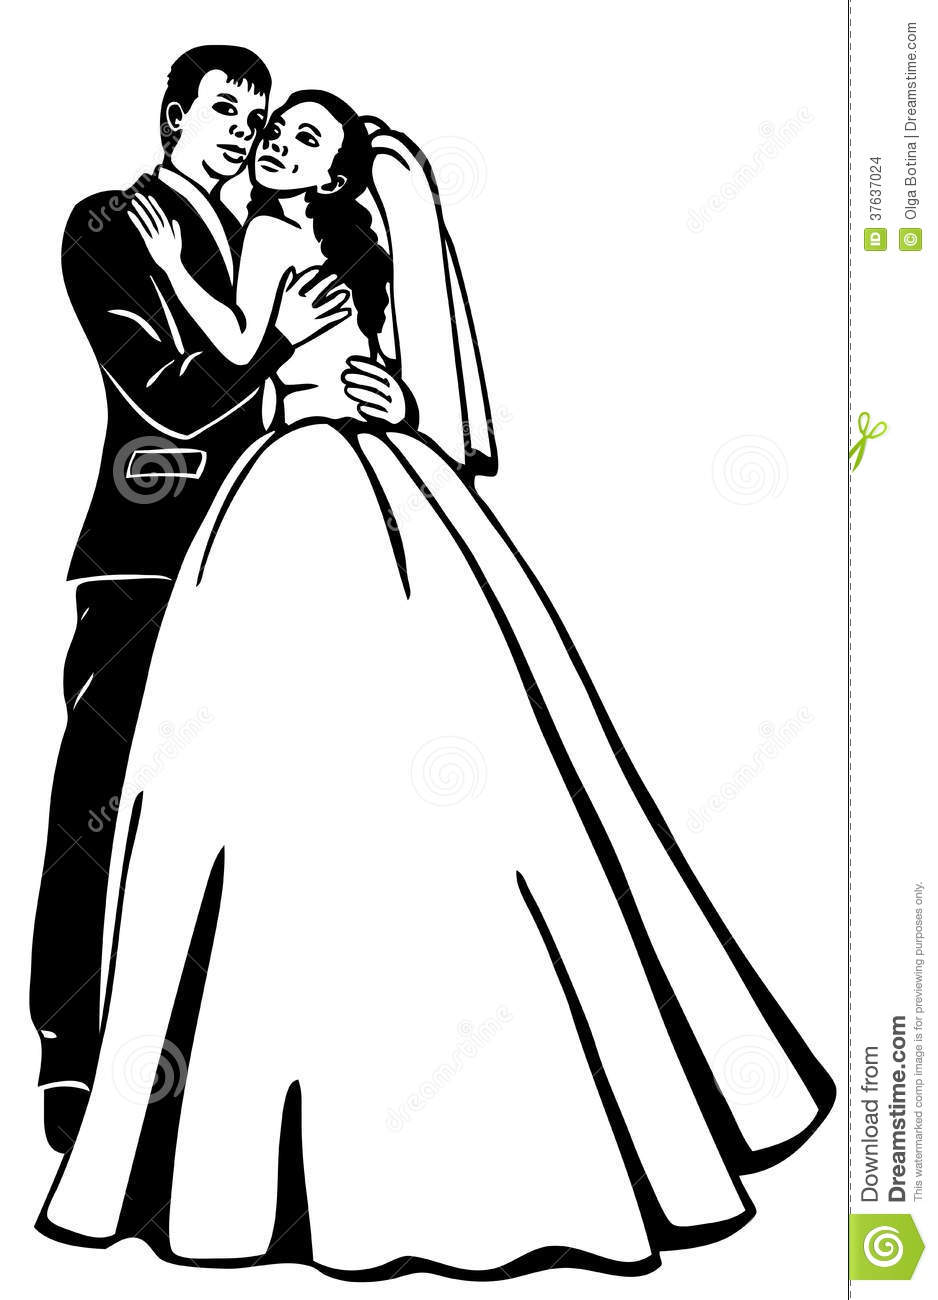 how to draw a wedding couple crafty stamps wedding couple large wd101ki wedding a draw couple to how